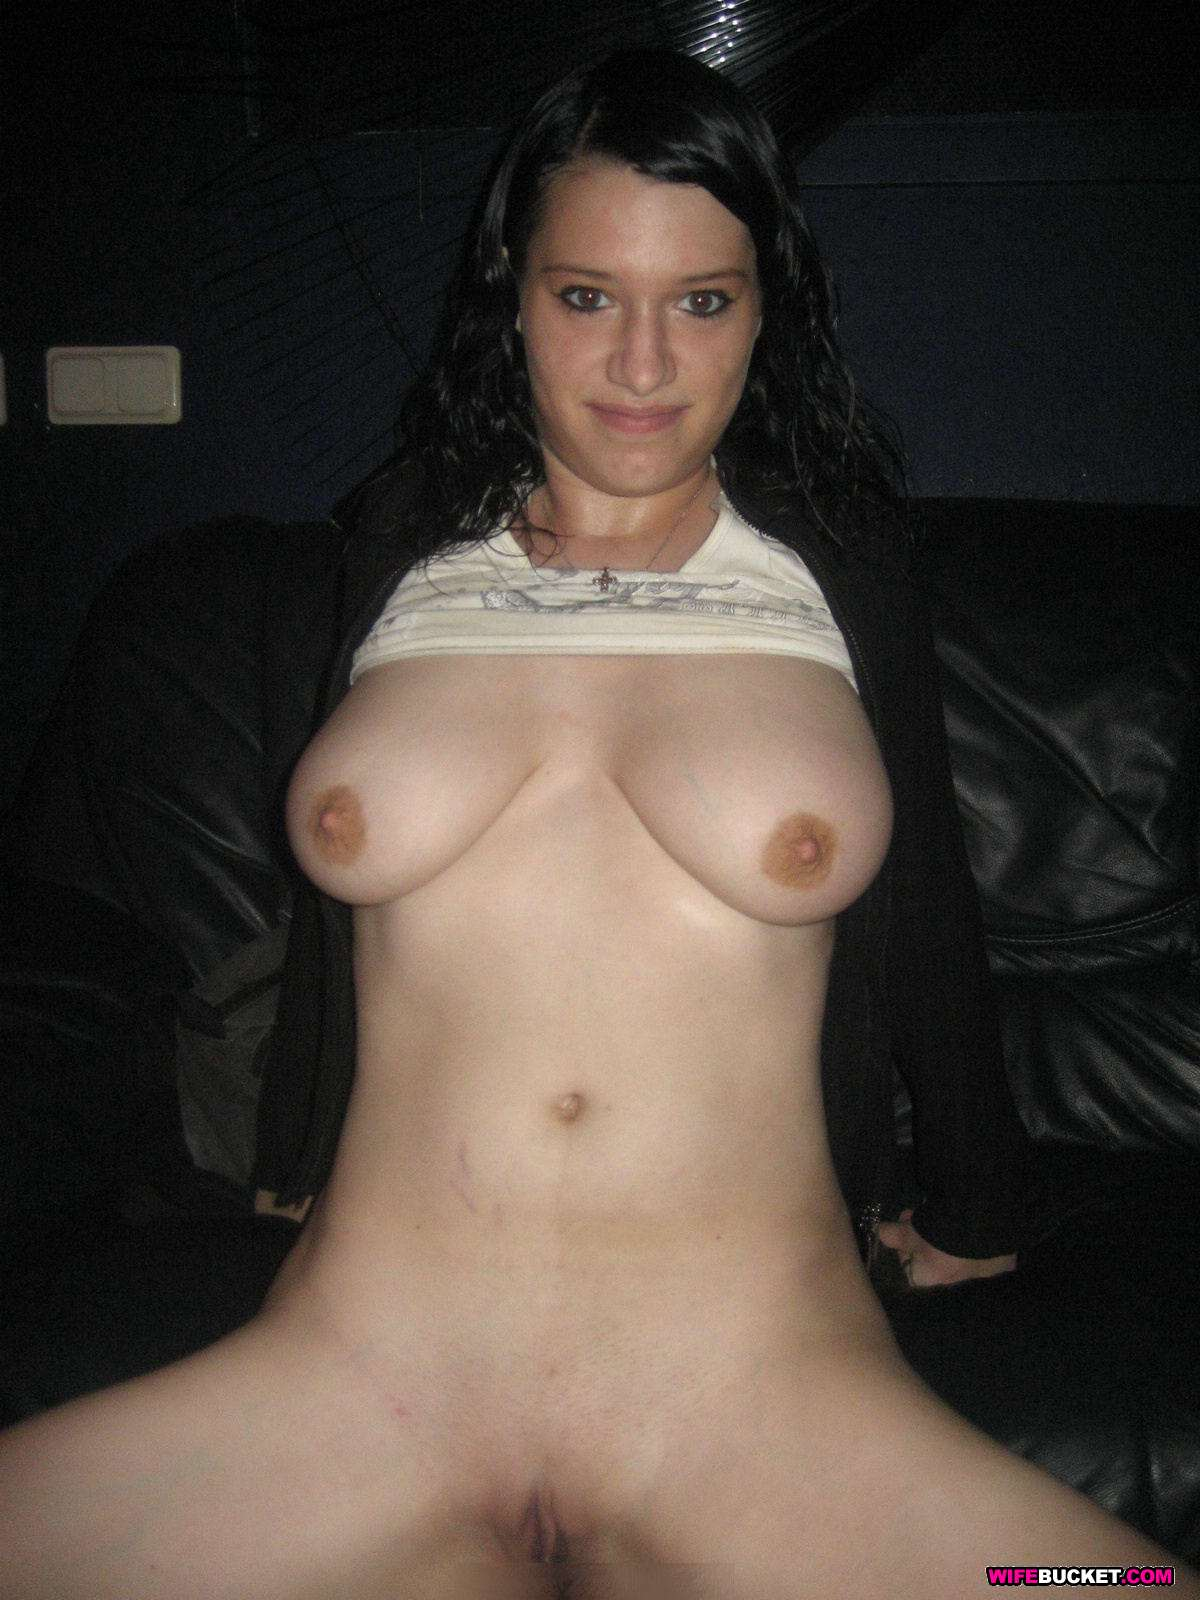 Amature Wife With Big Tits New Xxx 100 Free Pic